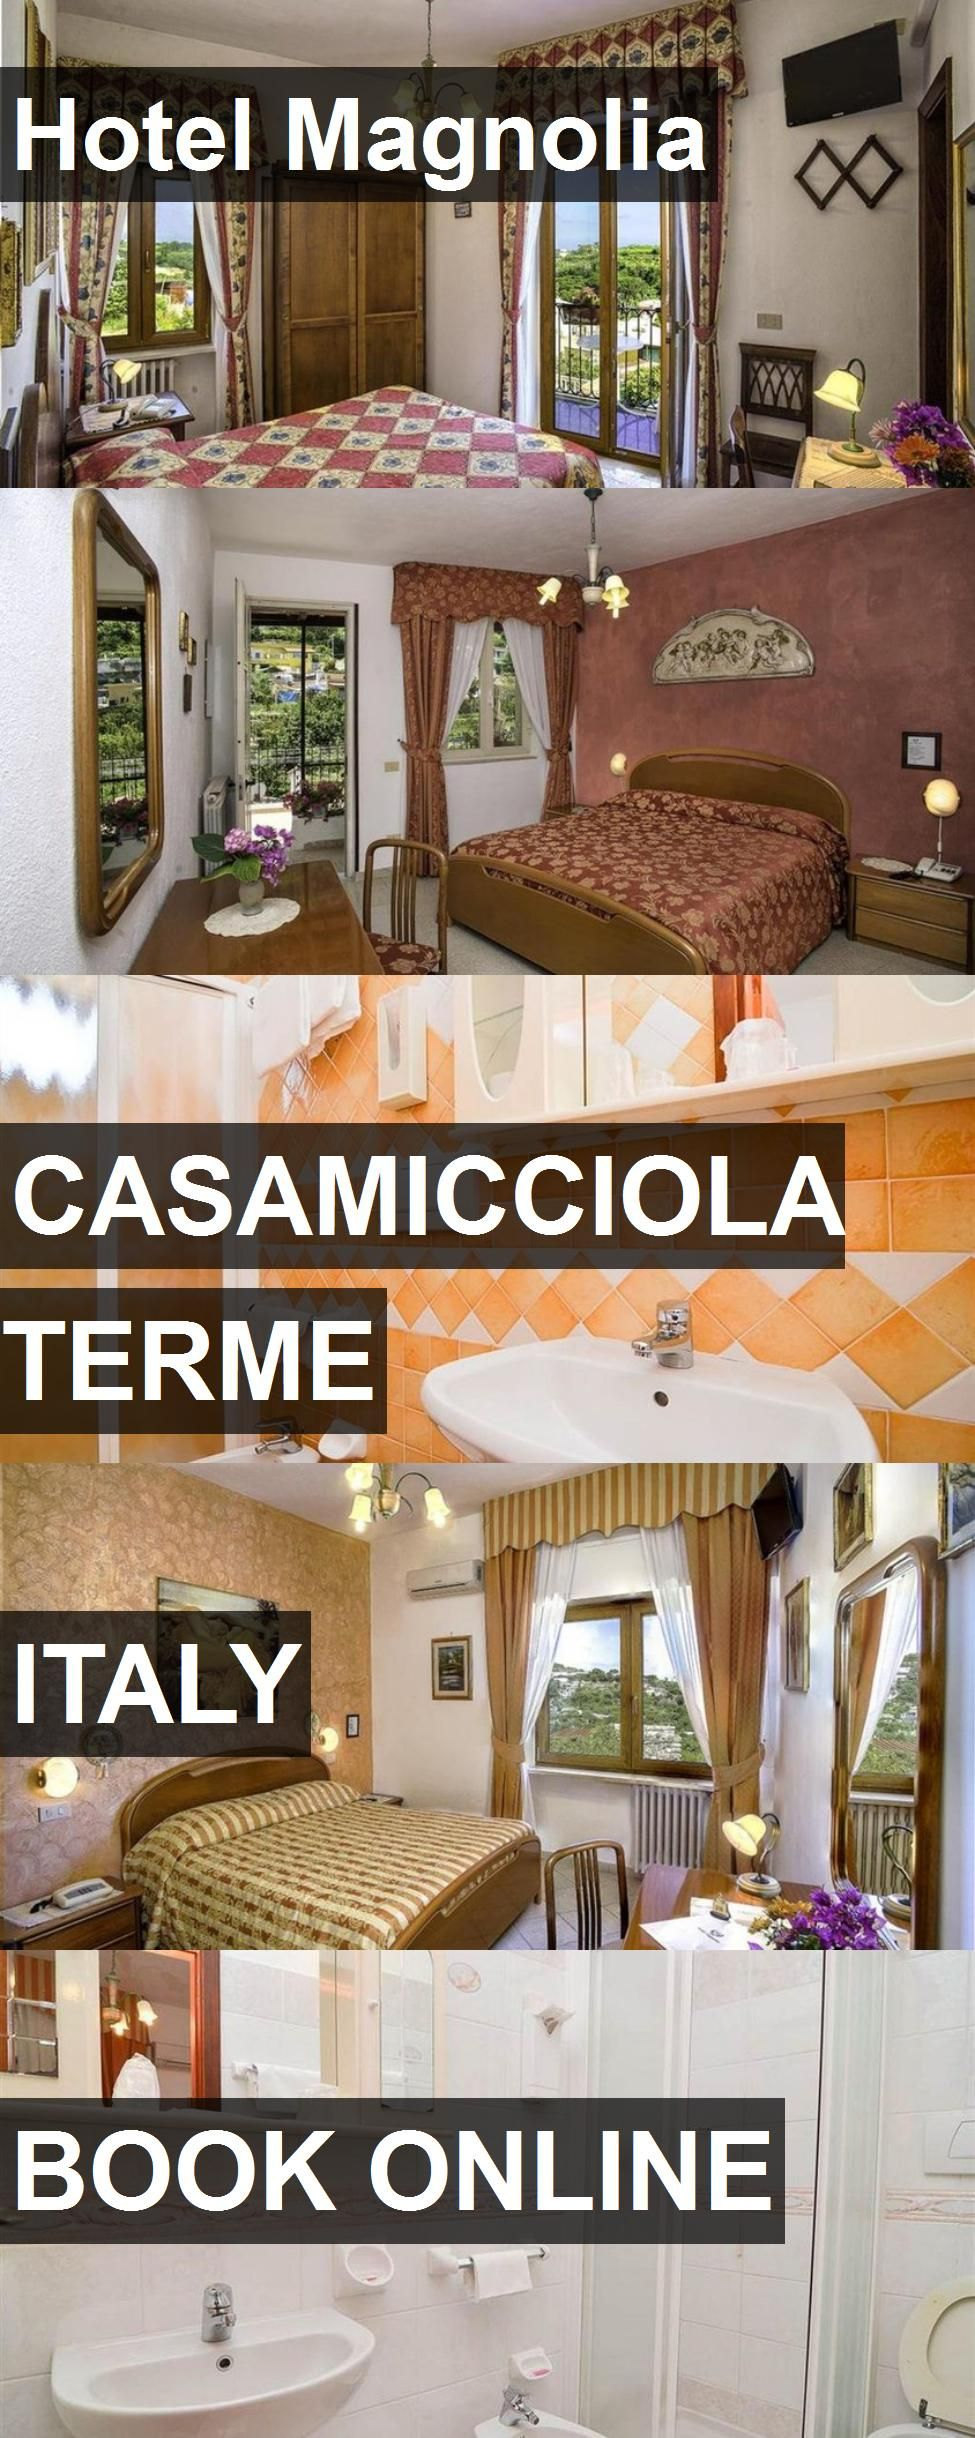 Hotel Magnolia in Casamicciola Terme, Italy. For more